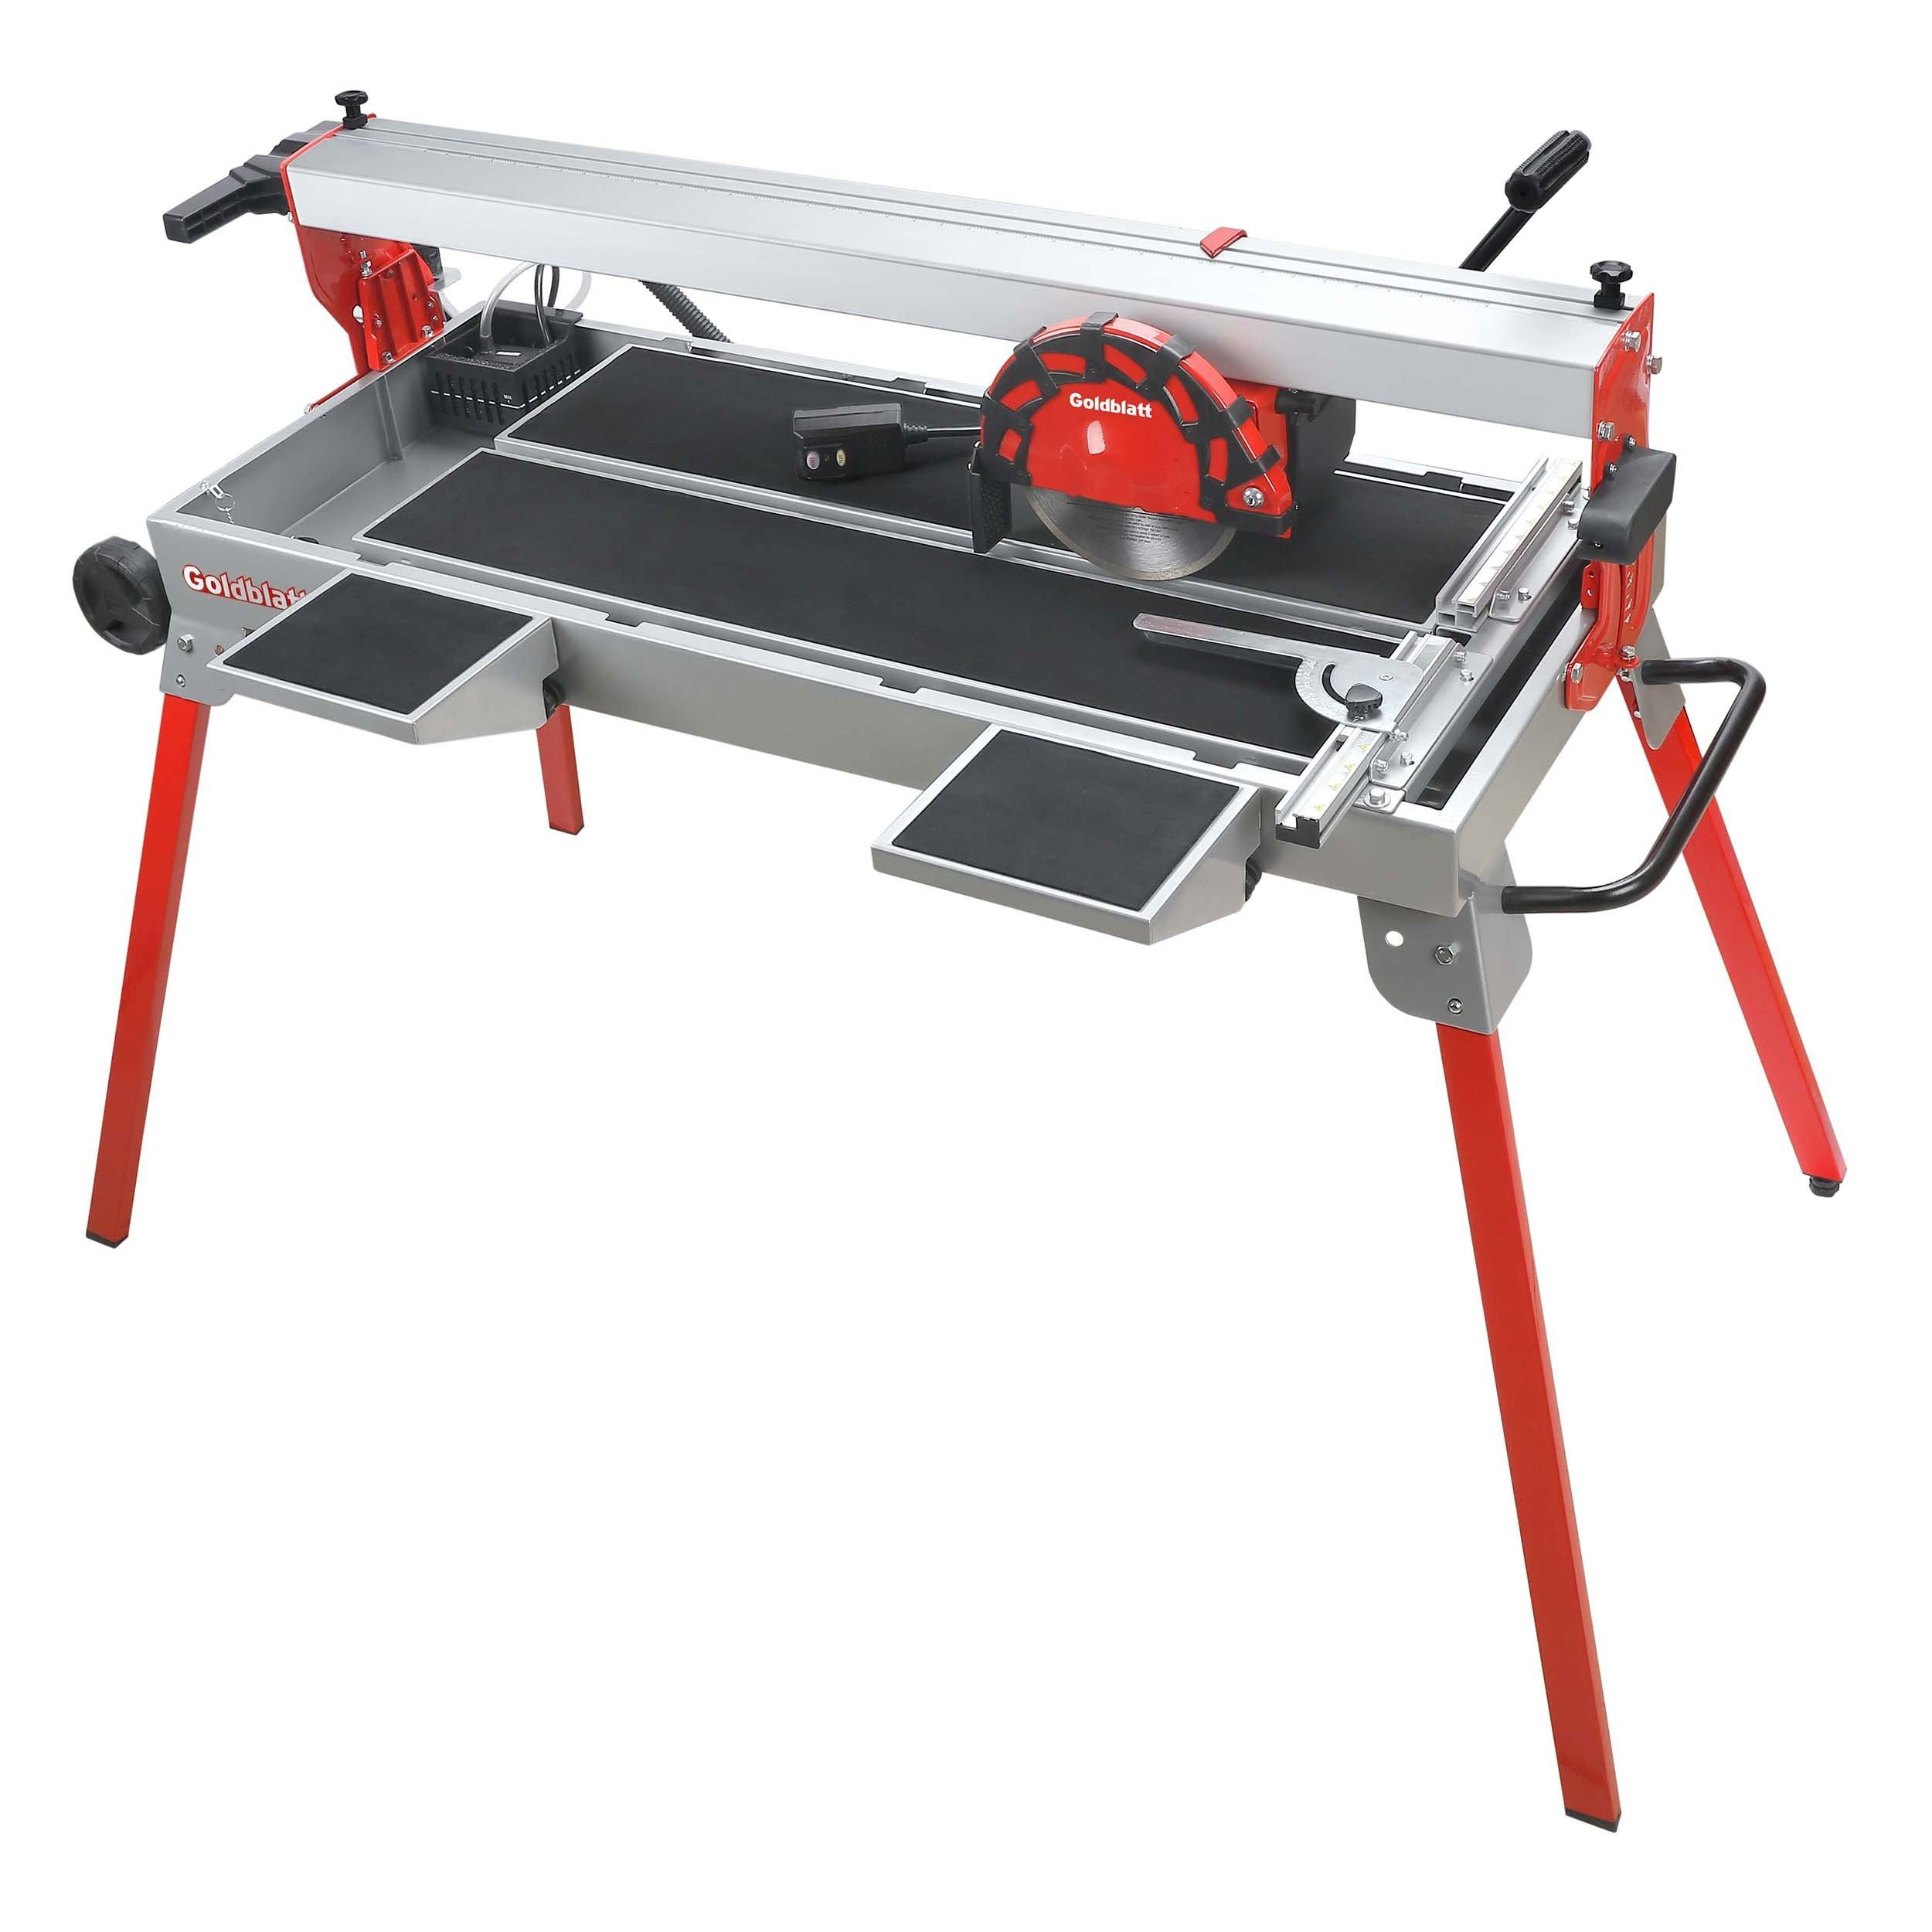 Tile Saw Lowes Skil Tile Saw Canwest Saws List Decking